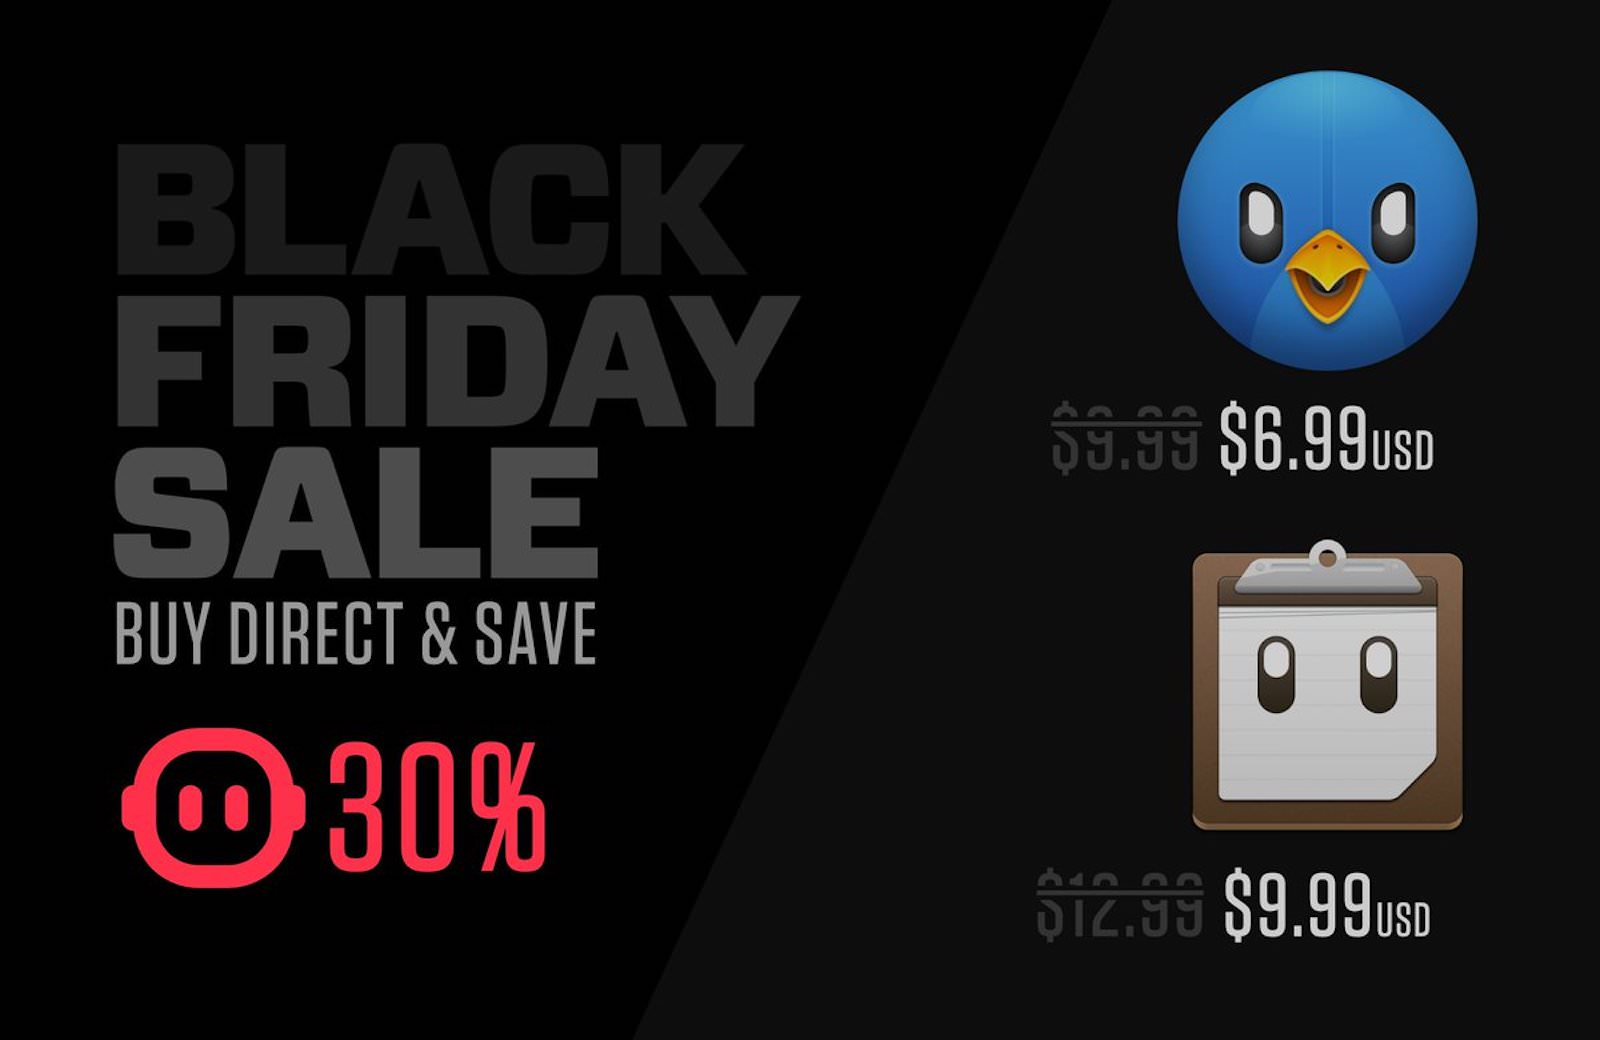 Tapbots black friday sale